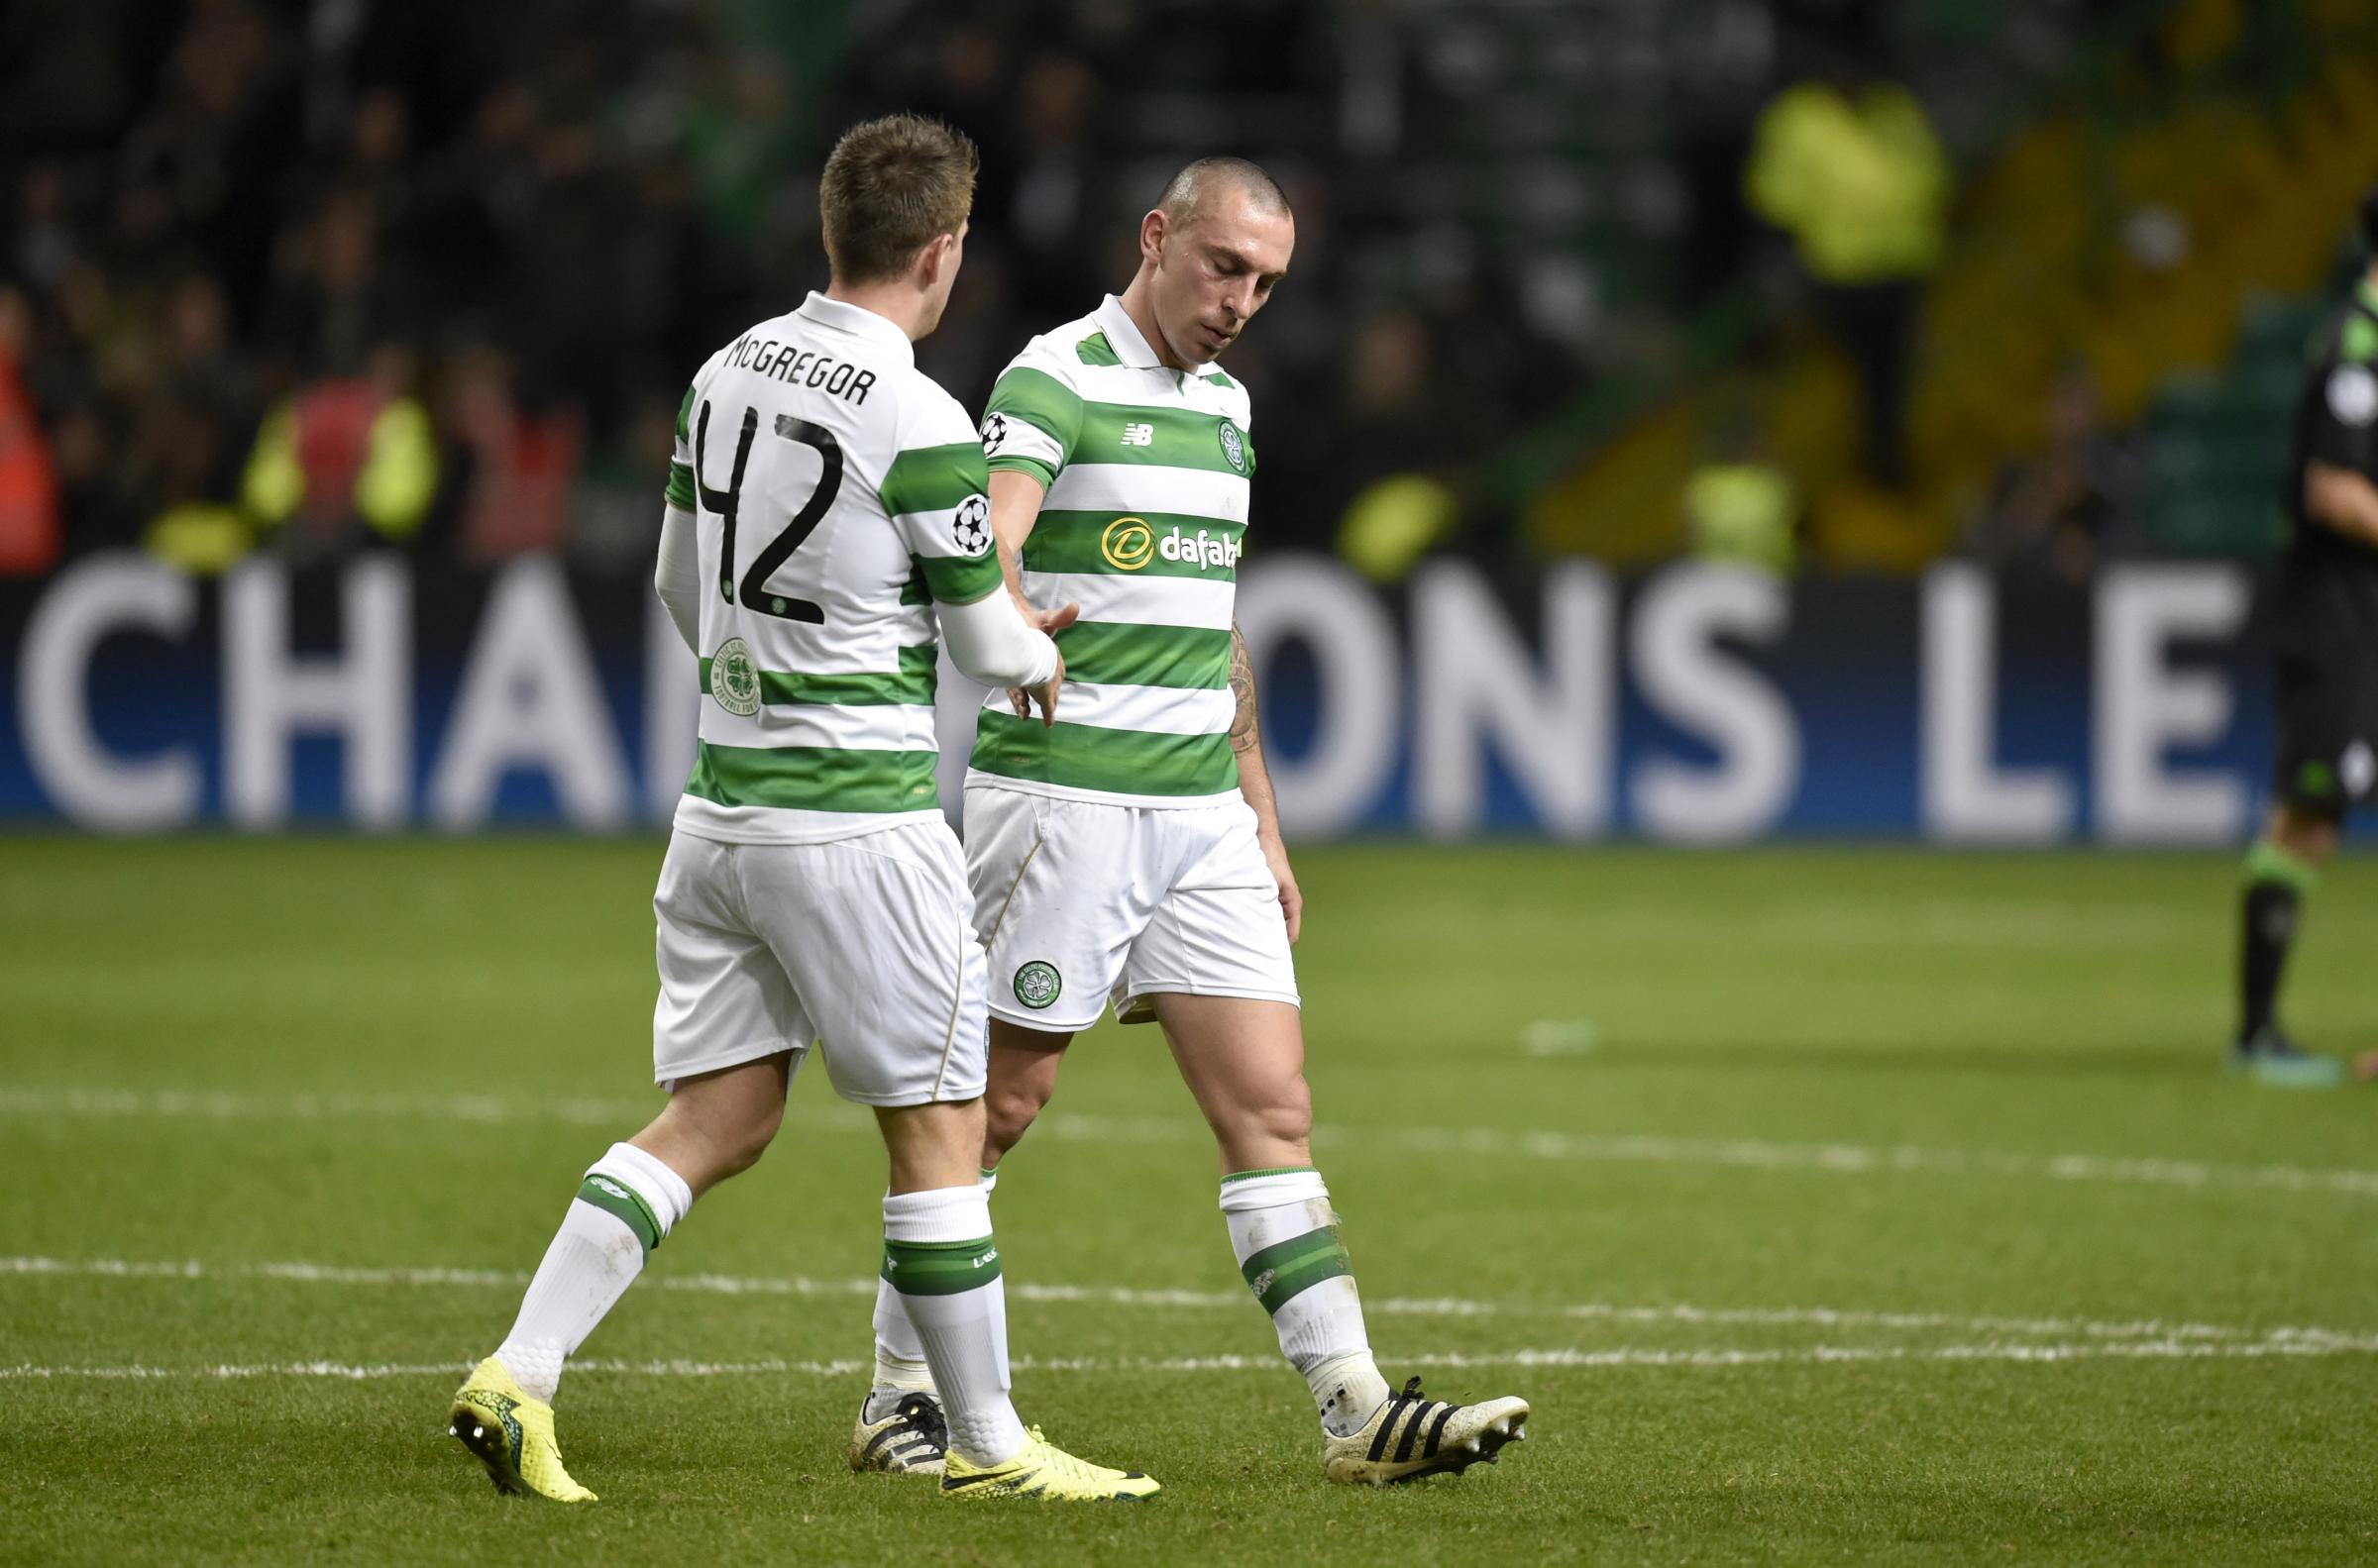 Celtic finished bottom of their group last season